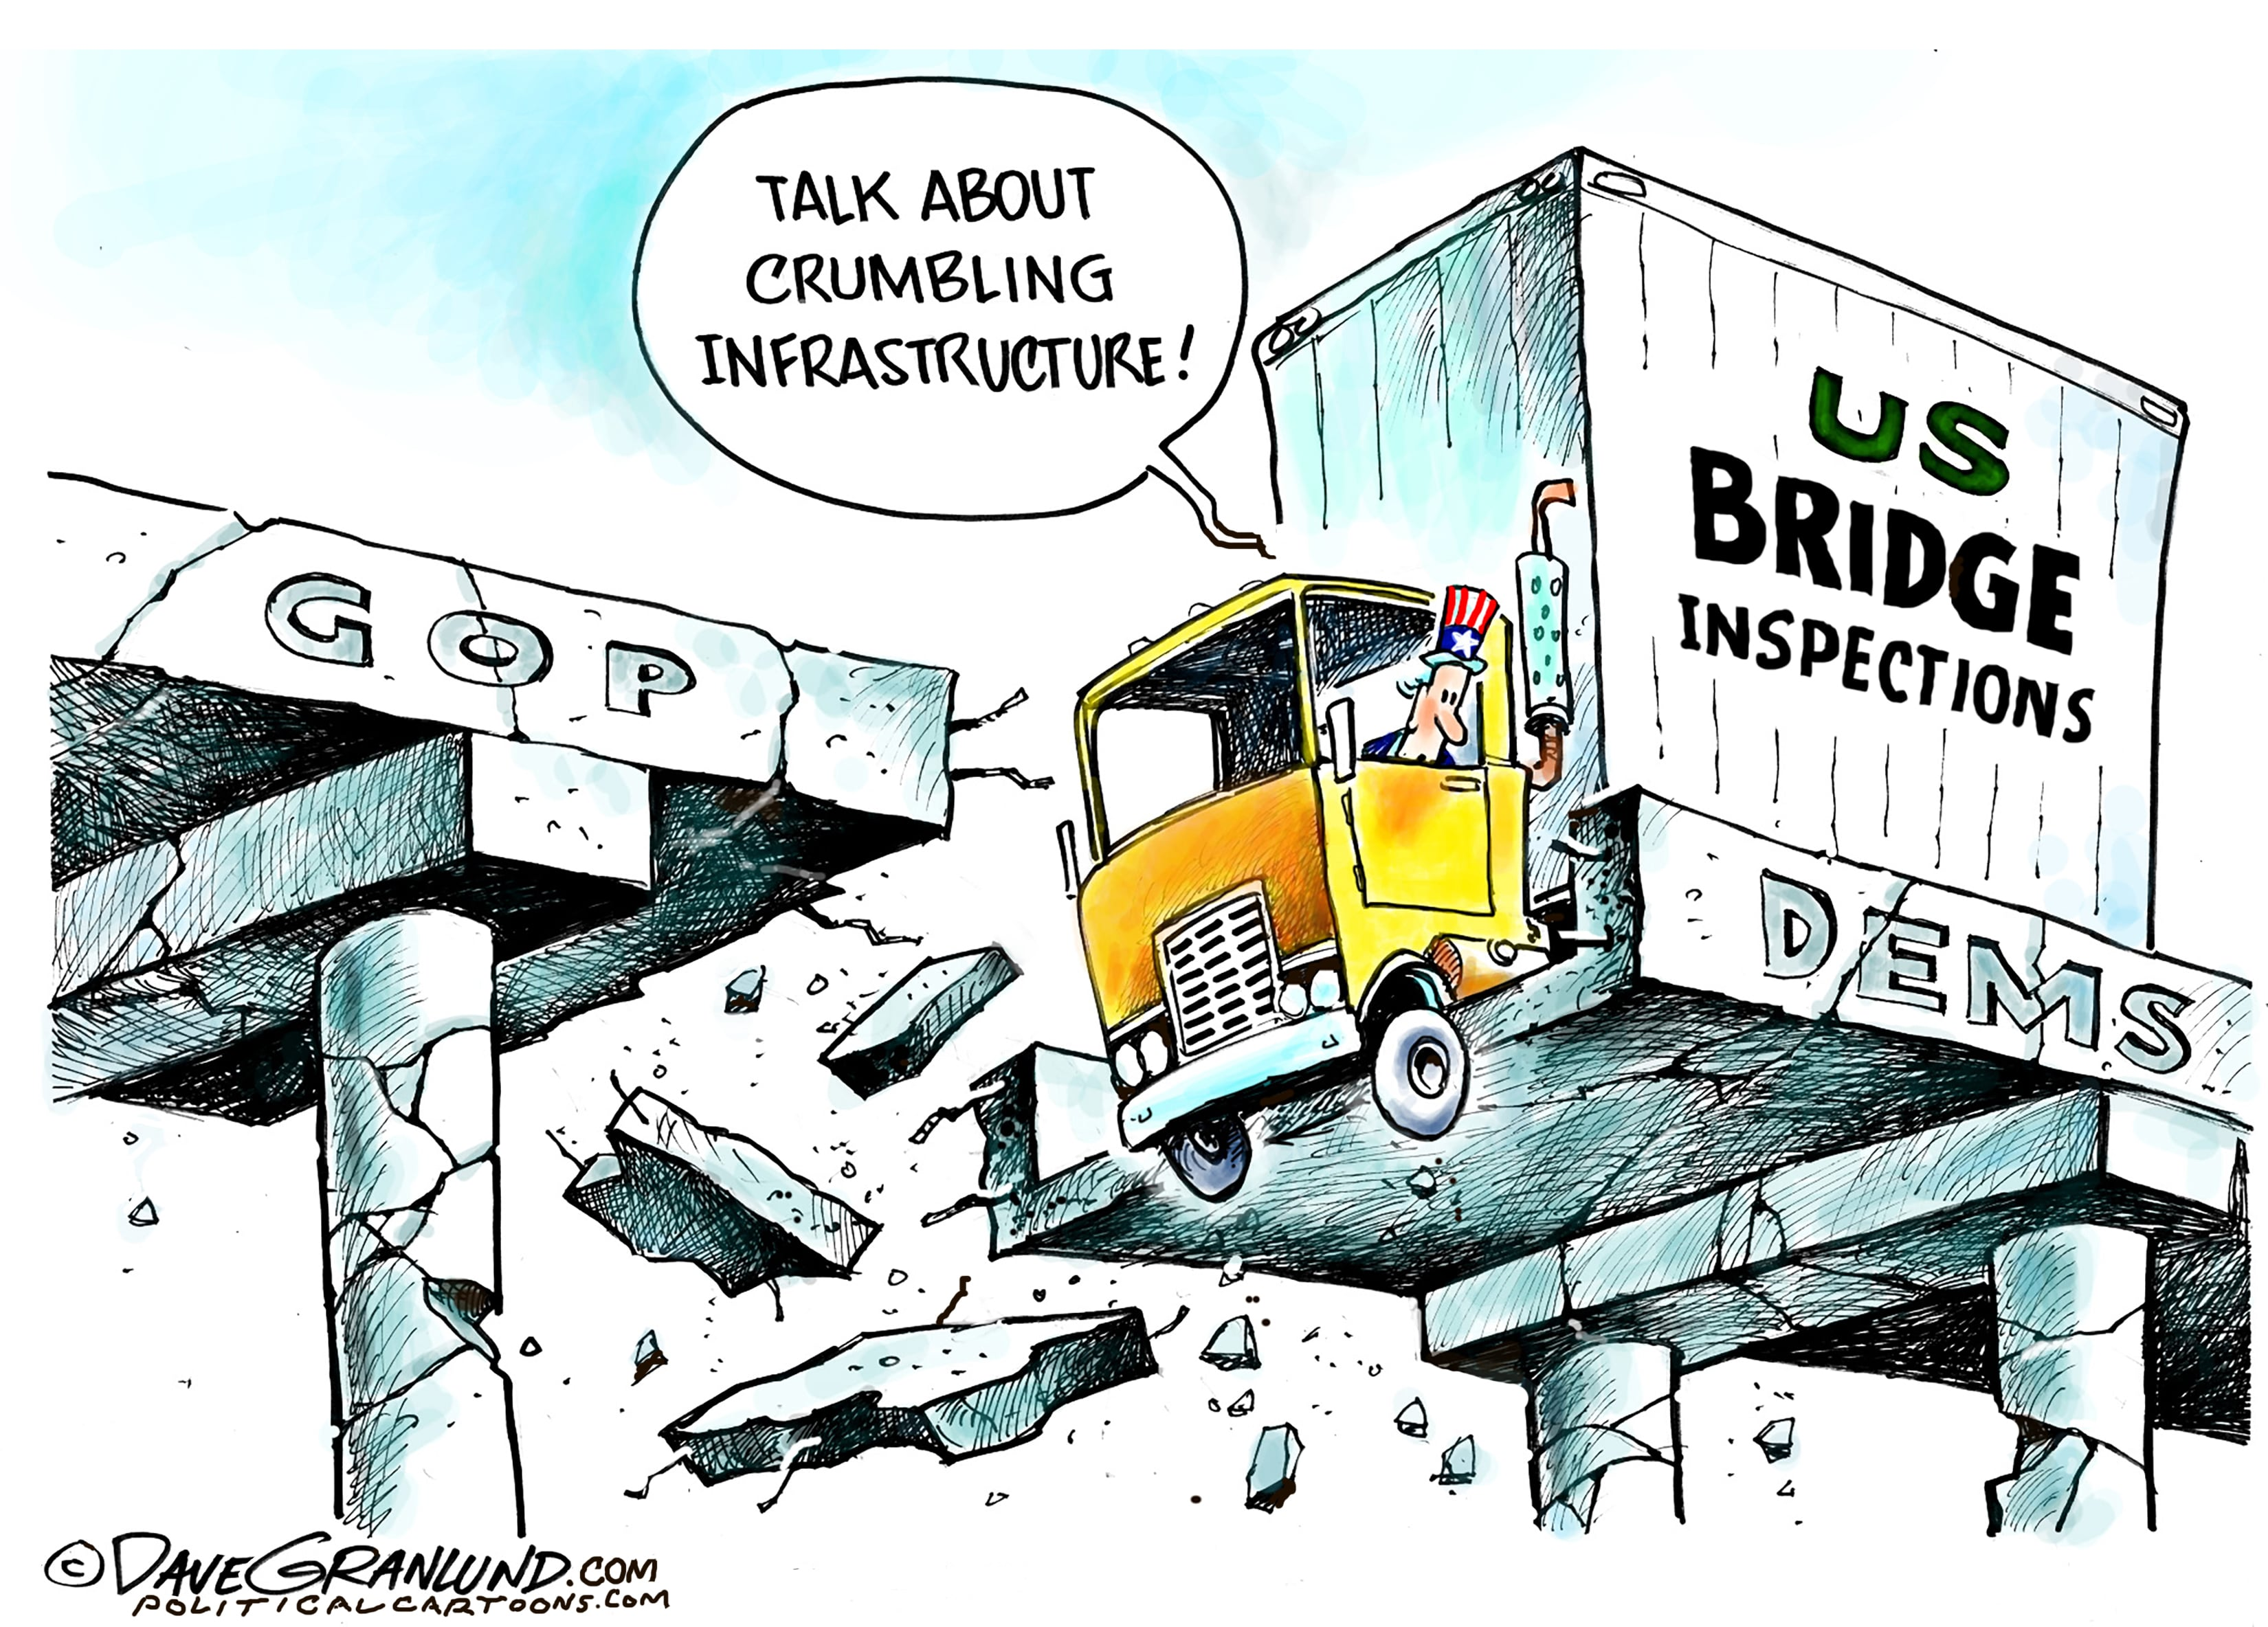 April 6: Crumbling Infrastructure